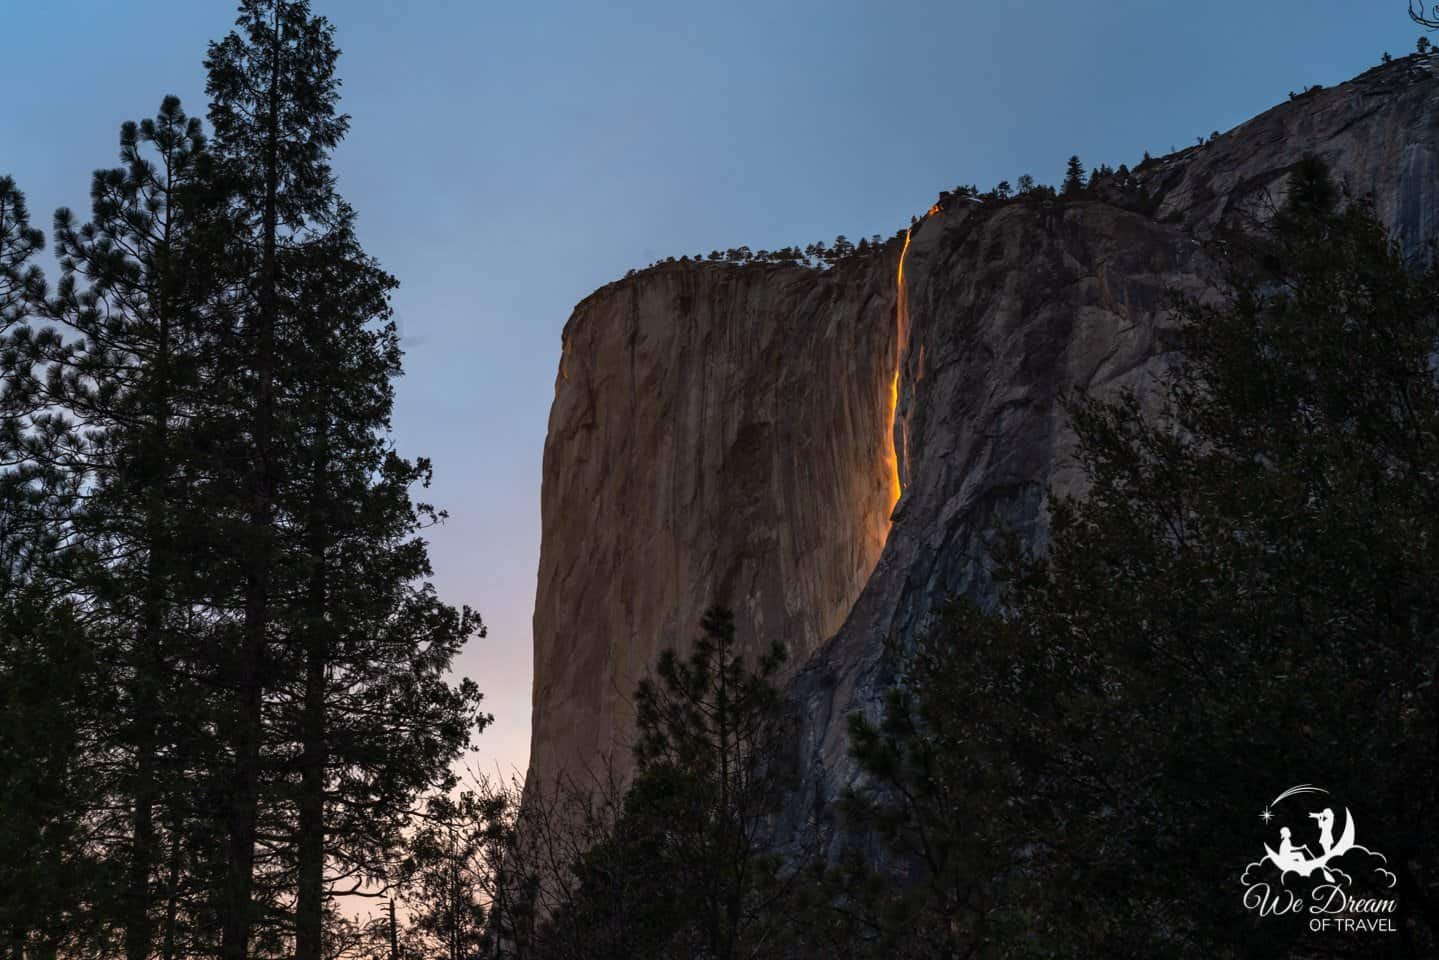 A view of Yosemite Firefall from near the Merced River.